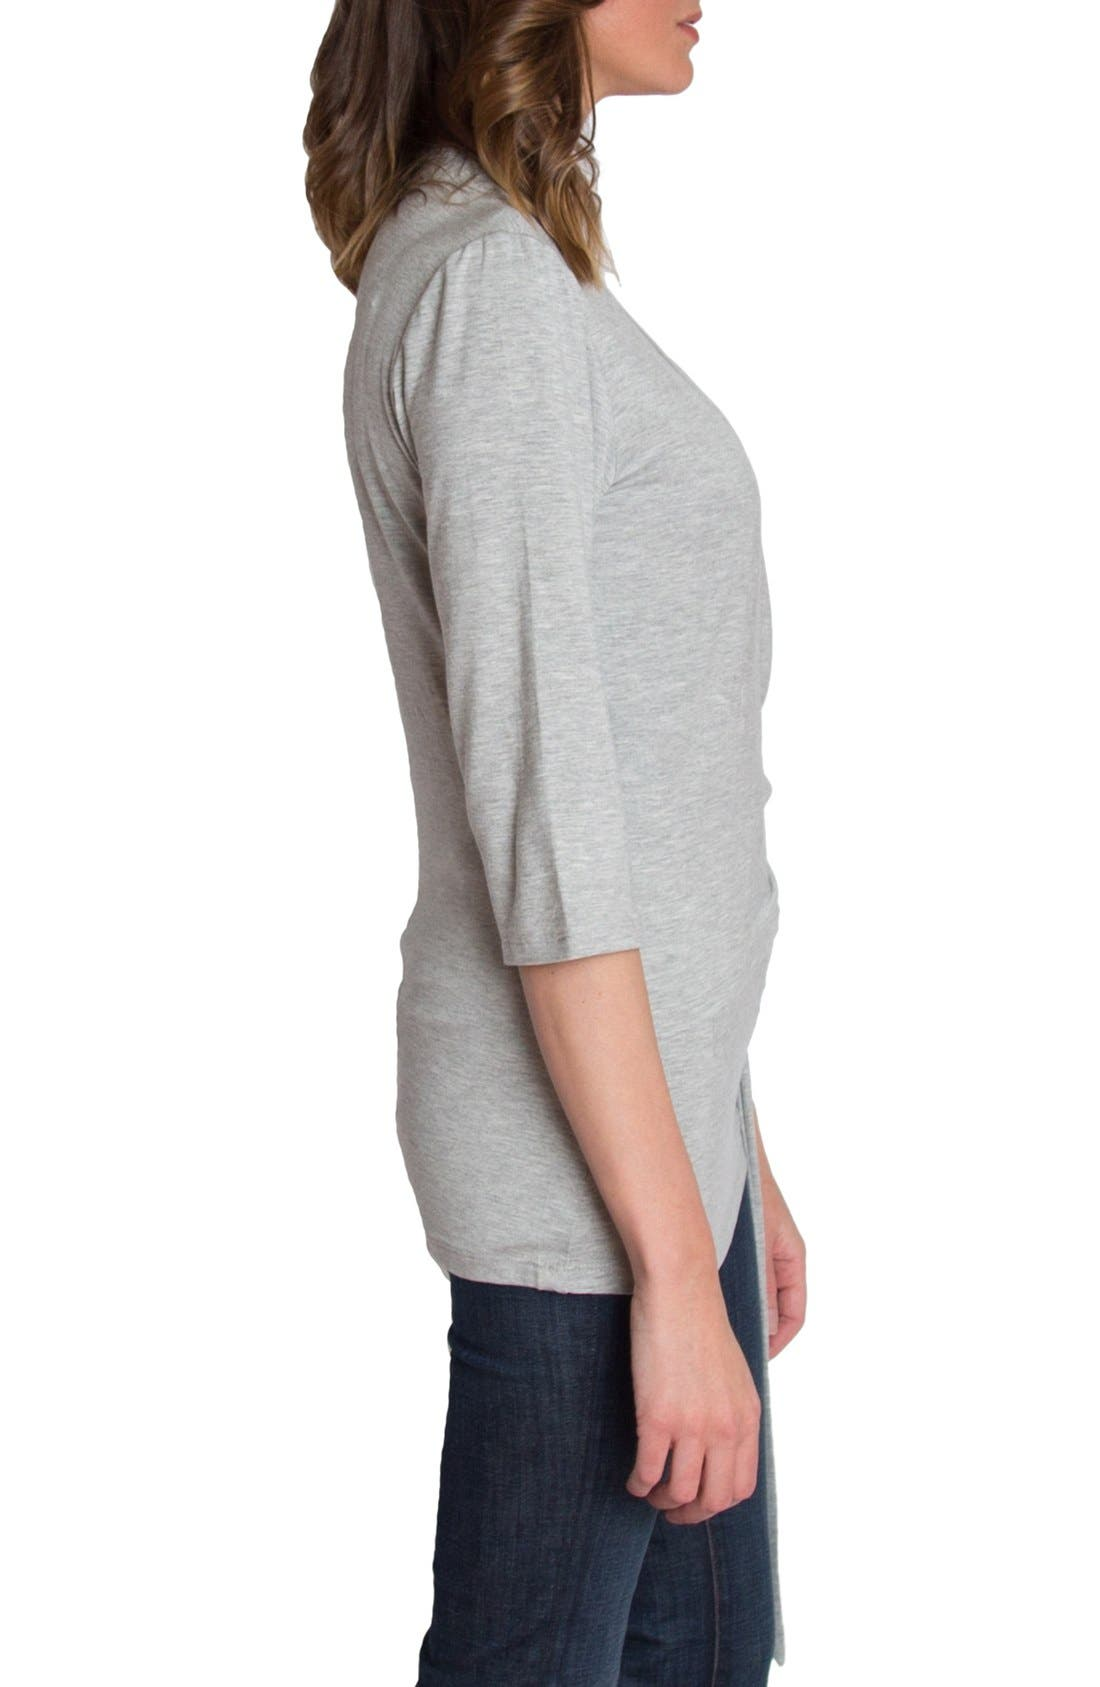 Whimsical Nursing Wrap Top,                             Alternate thumbnail 3, color,                             HEATHER GRAY